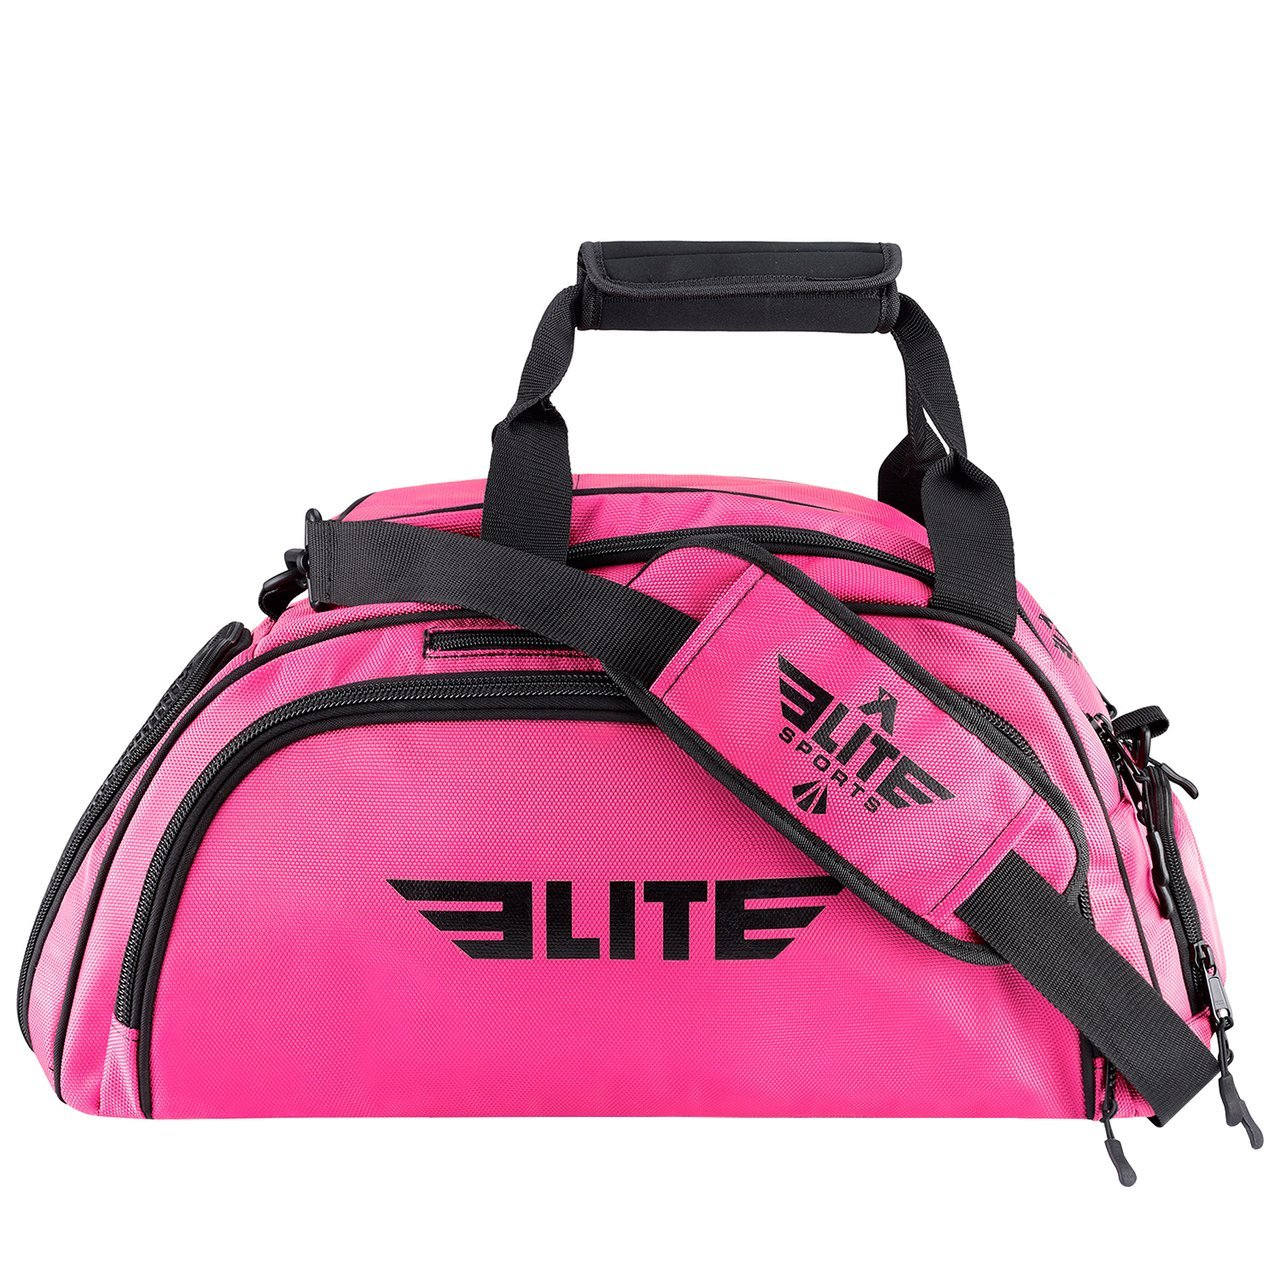 Load image into Gallery viewer, Elite Sports Warrior Series Pink Large Duffel Boxing Gear Gym Bag & Backpack